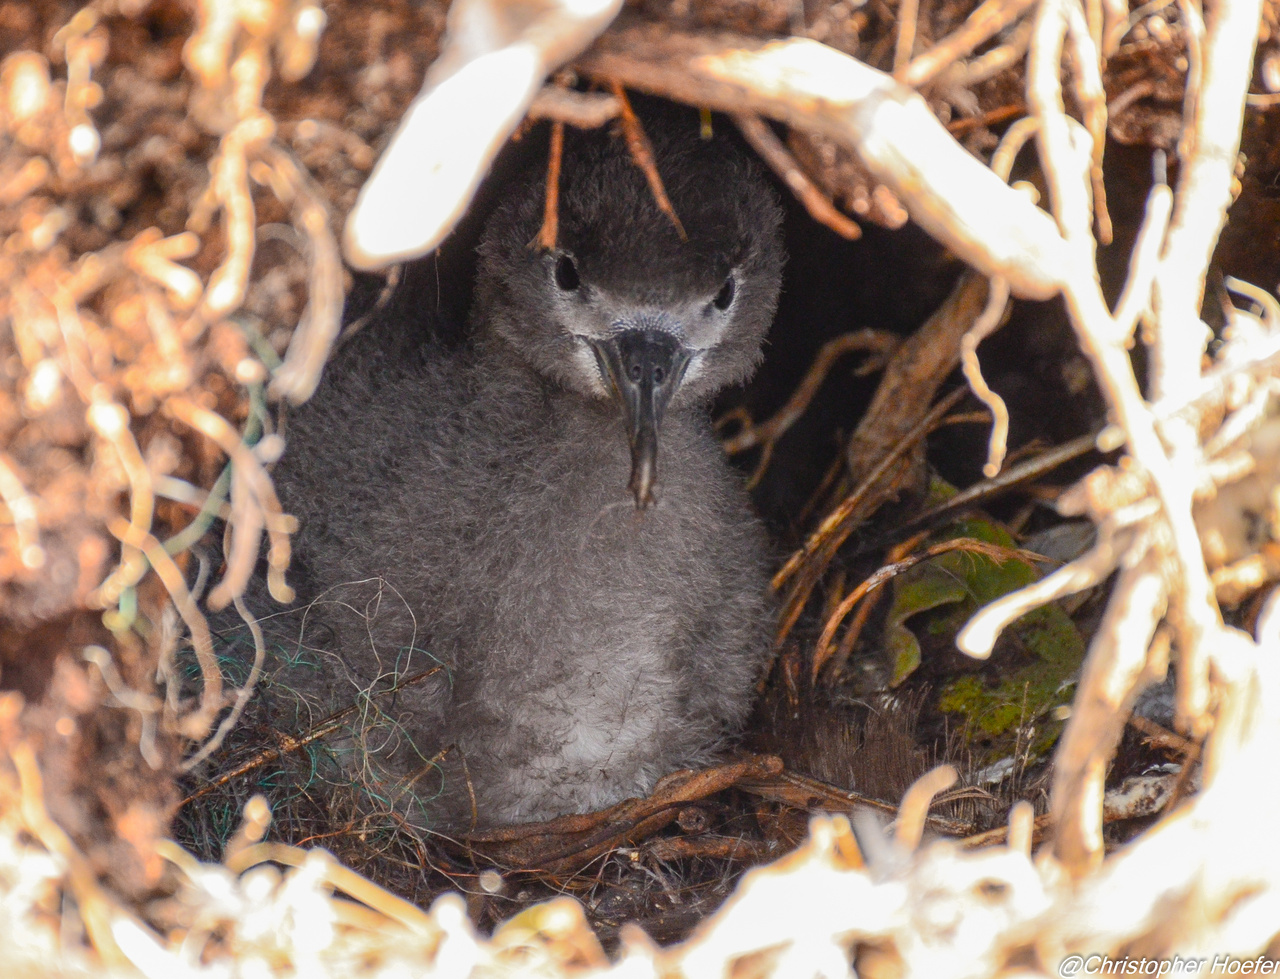 03_Wedge-tailed Shearwater chick.jpg